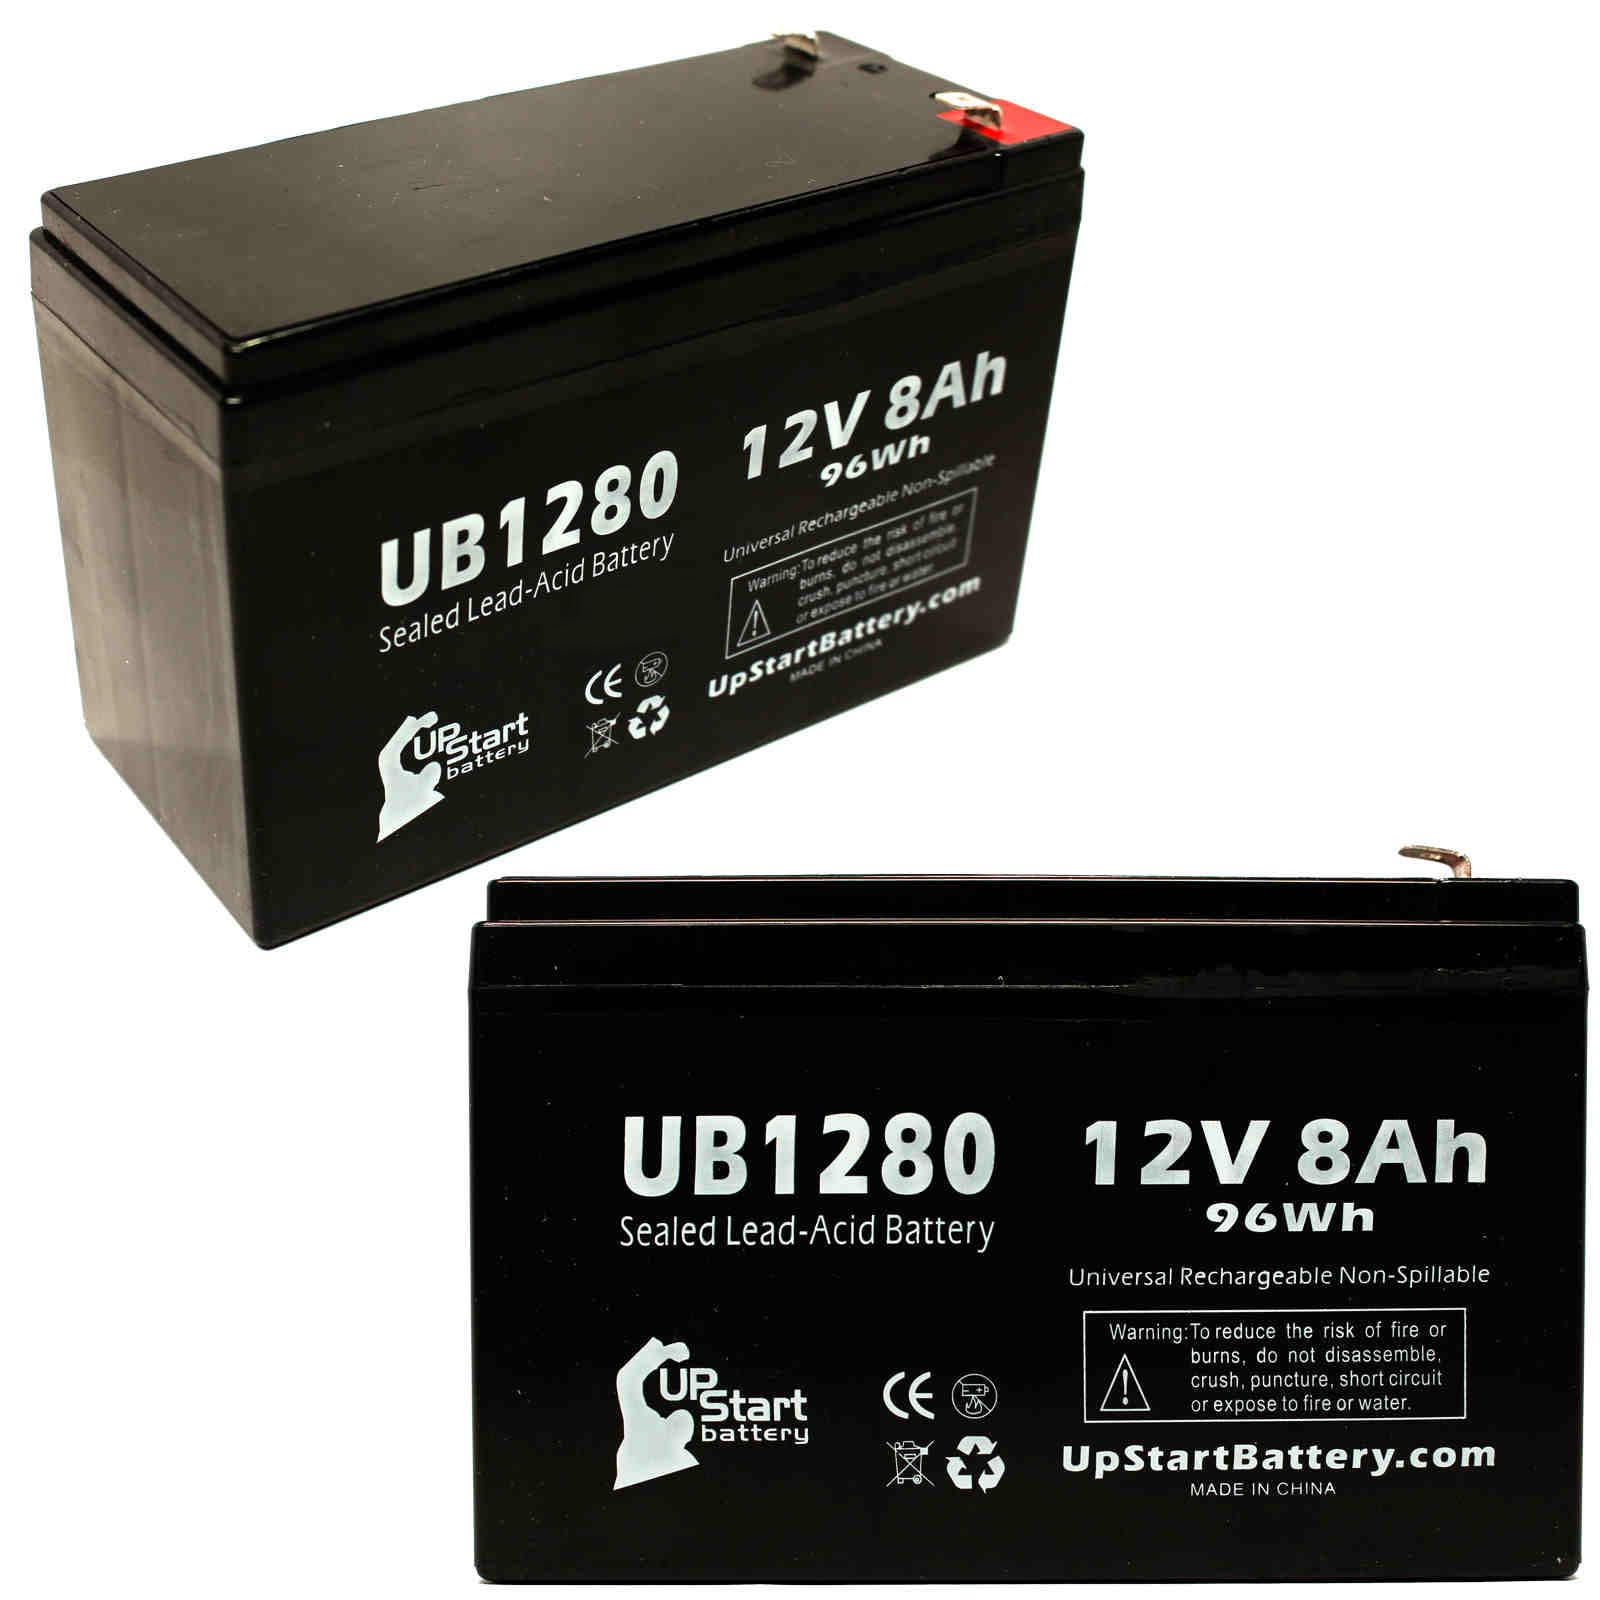 UpStart Battery 2x Pack - Invivo Research Inc 1100 OMEGA BLOOD PRESSURE MONITOR Battery - Replacement UB1280 Universal SLA Battery (12V, 8Ah) at Sears.com